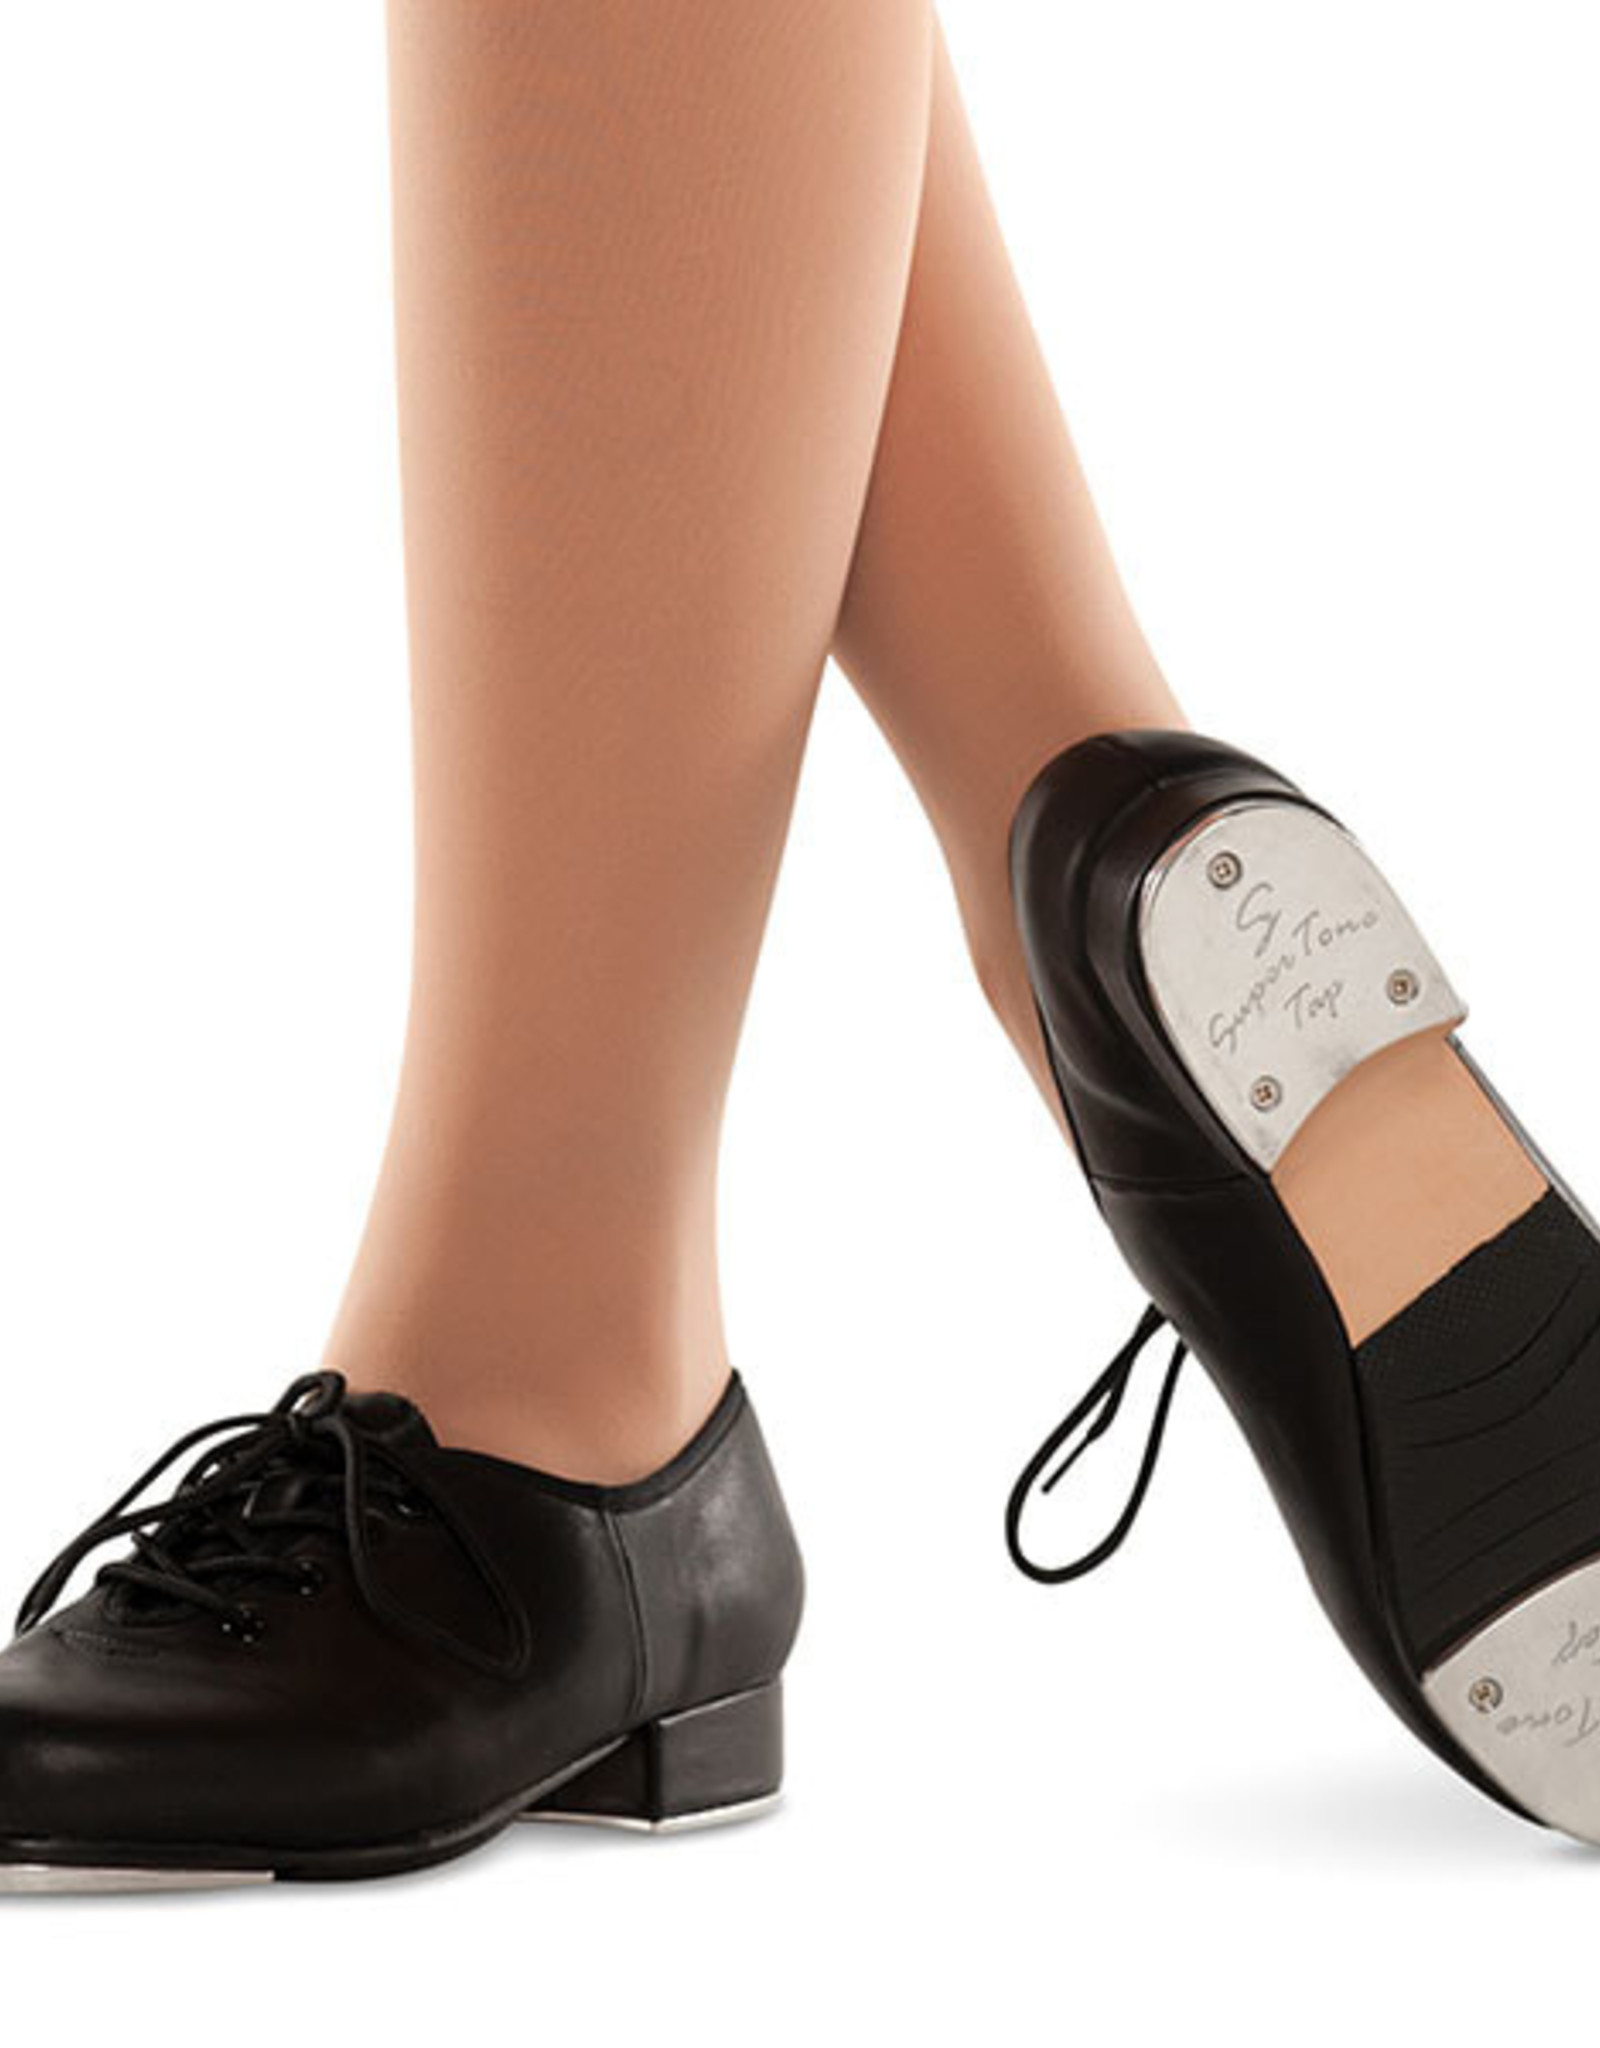 DANZ N MOTION SLAMMER LEATHER TAP SHOES (3333)